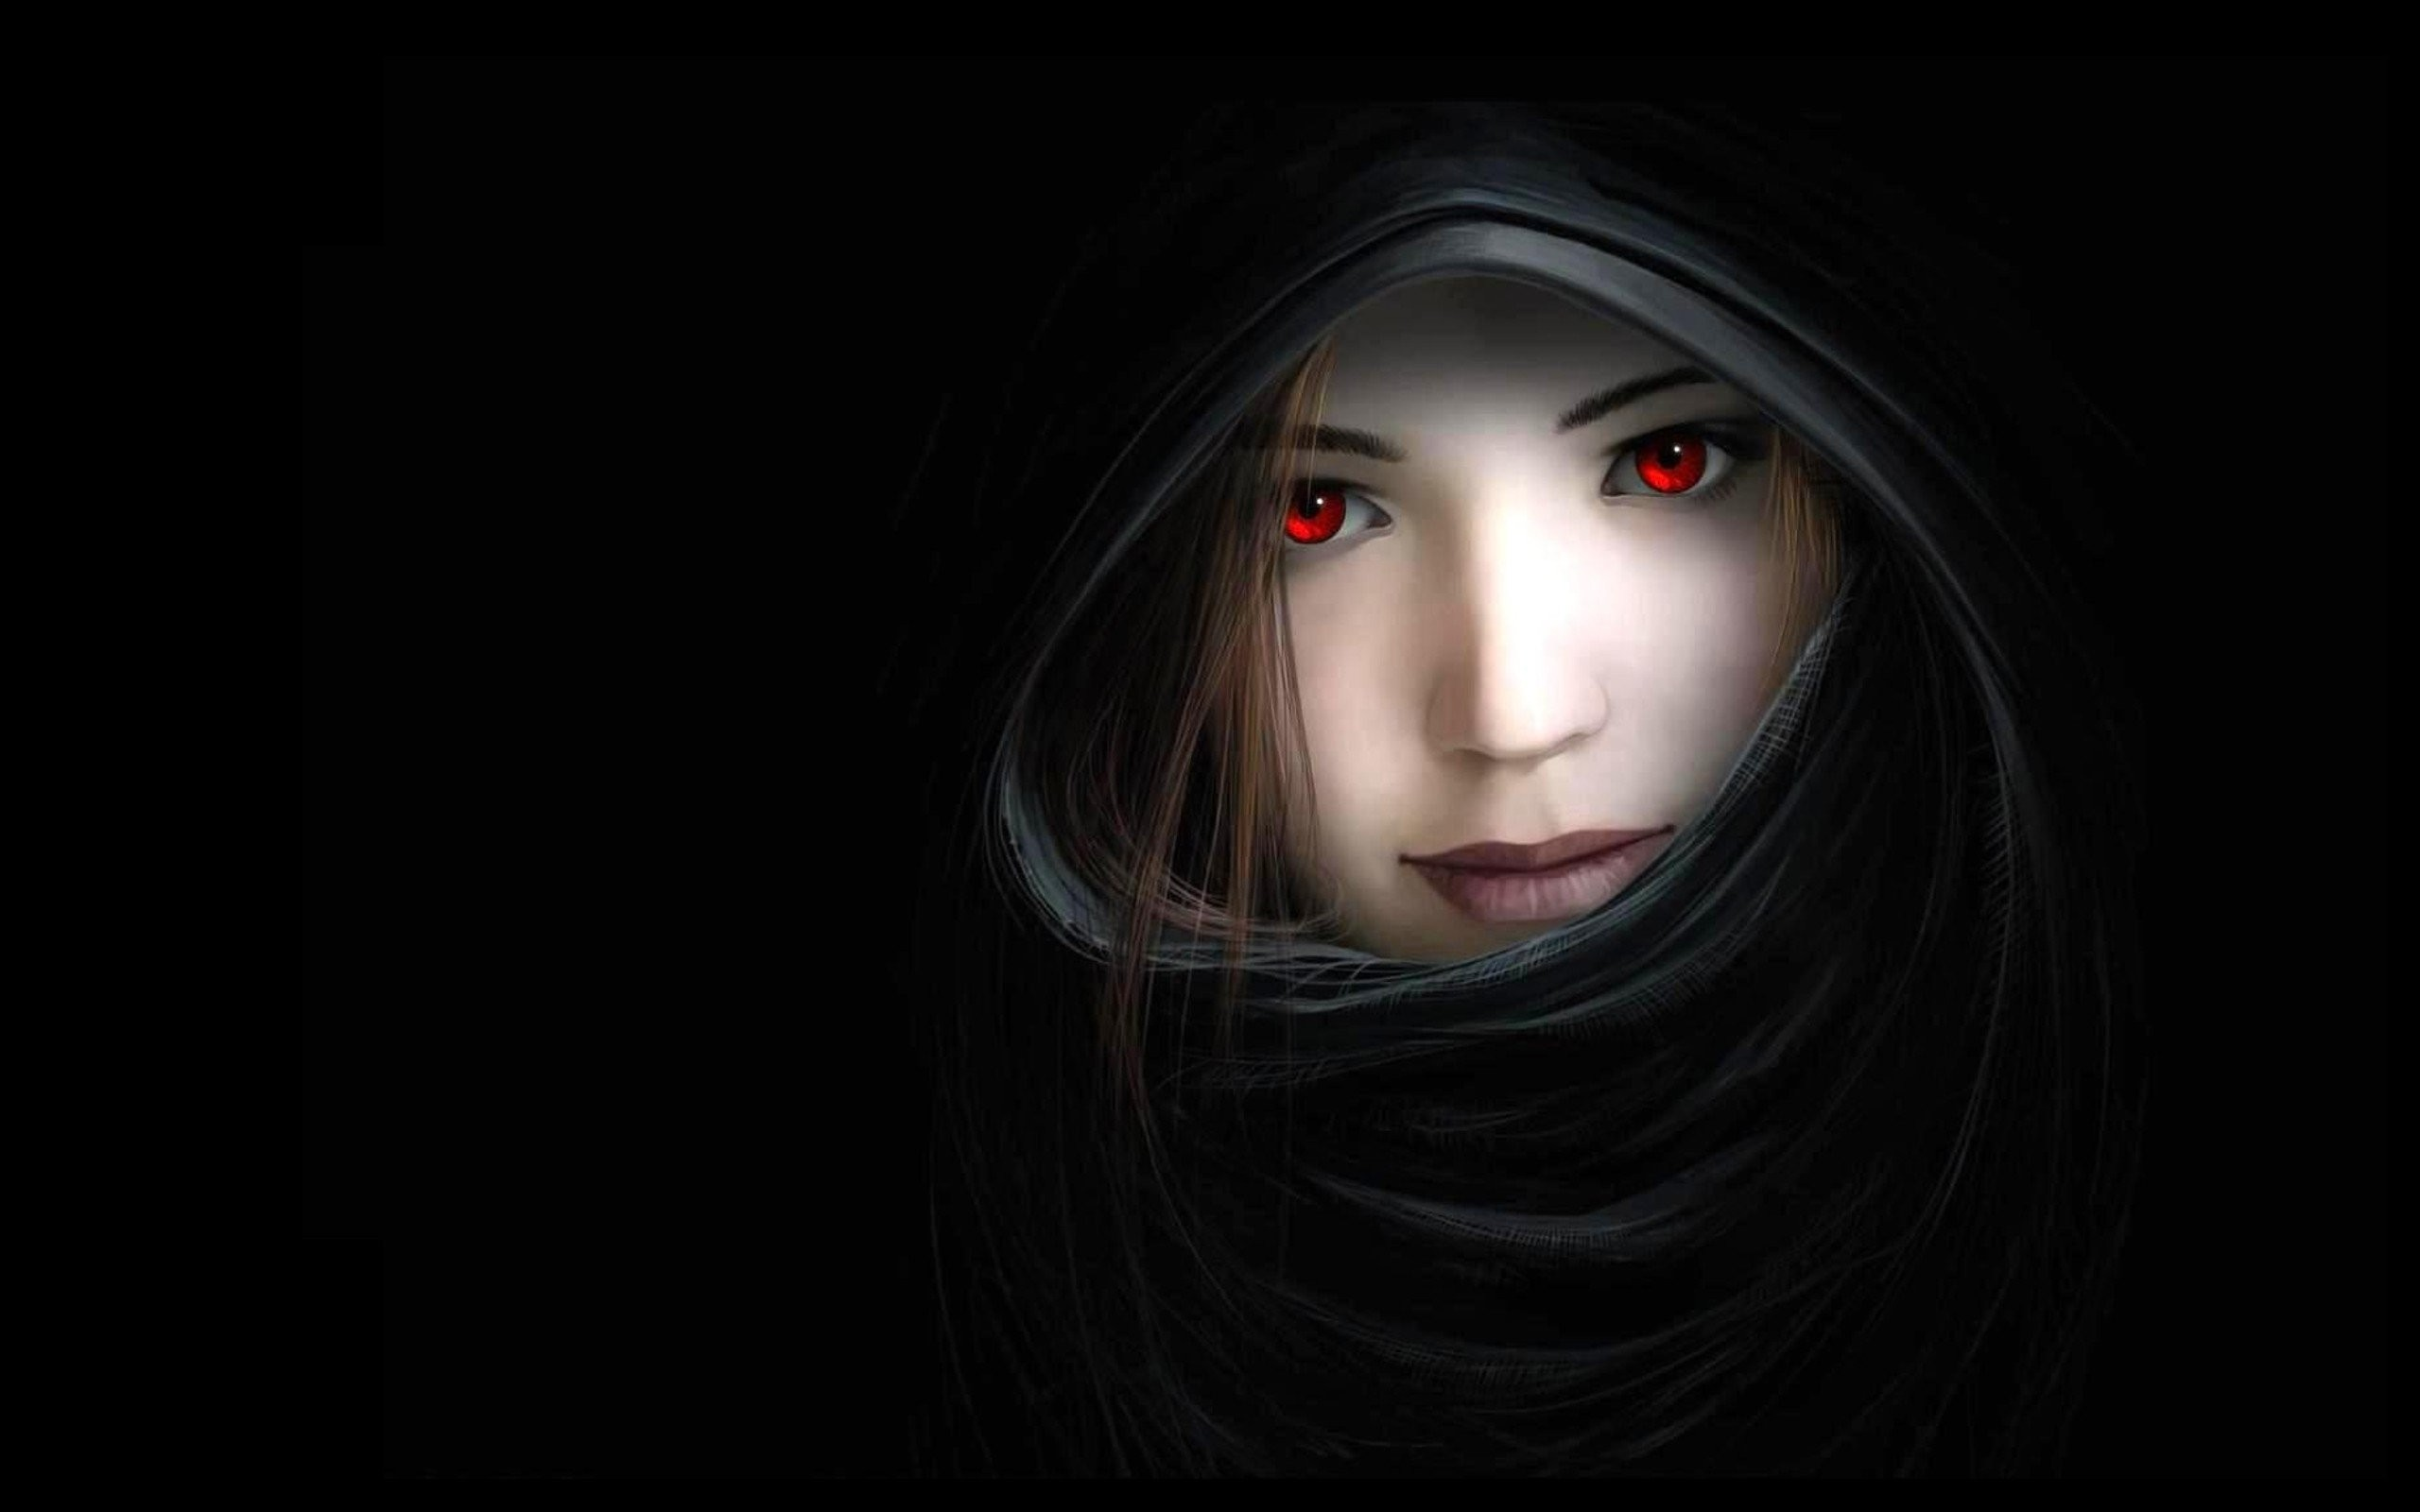 2560x1600 Artwork Black Background Dark Hooded Mouth Noses Red Eyes Witches Women